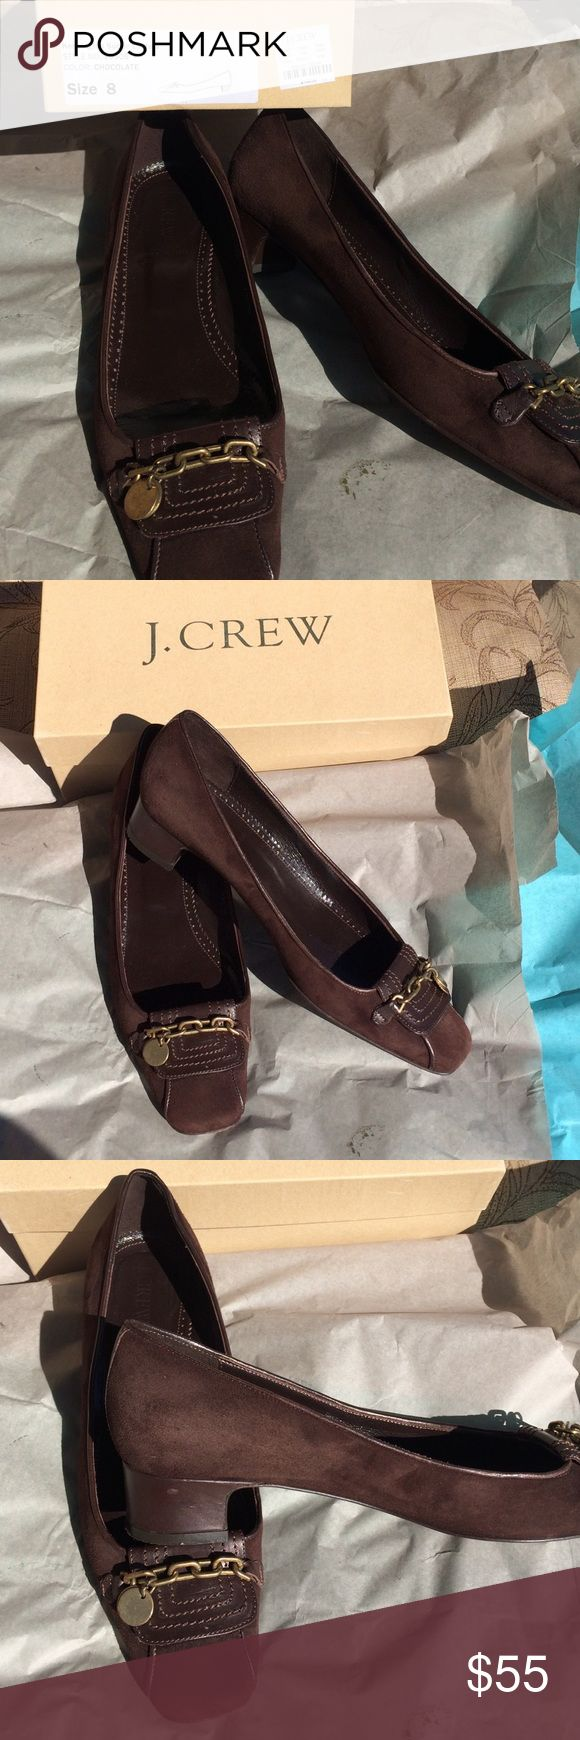 J crew Kensington Loafers Fantastic condition brown J Crew Kensington loafers worn only a few times. Brown suede with one inch leather heel and leather fold over decorated with bronze chain and coins. Very classic style. No scuffs on suede or heel just a bit of scuffing on leather sole. Made in Italy. Also these shoes come in original box J. Crew Shoes Flats & Loafers